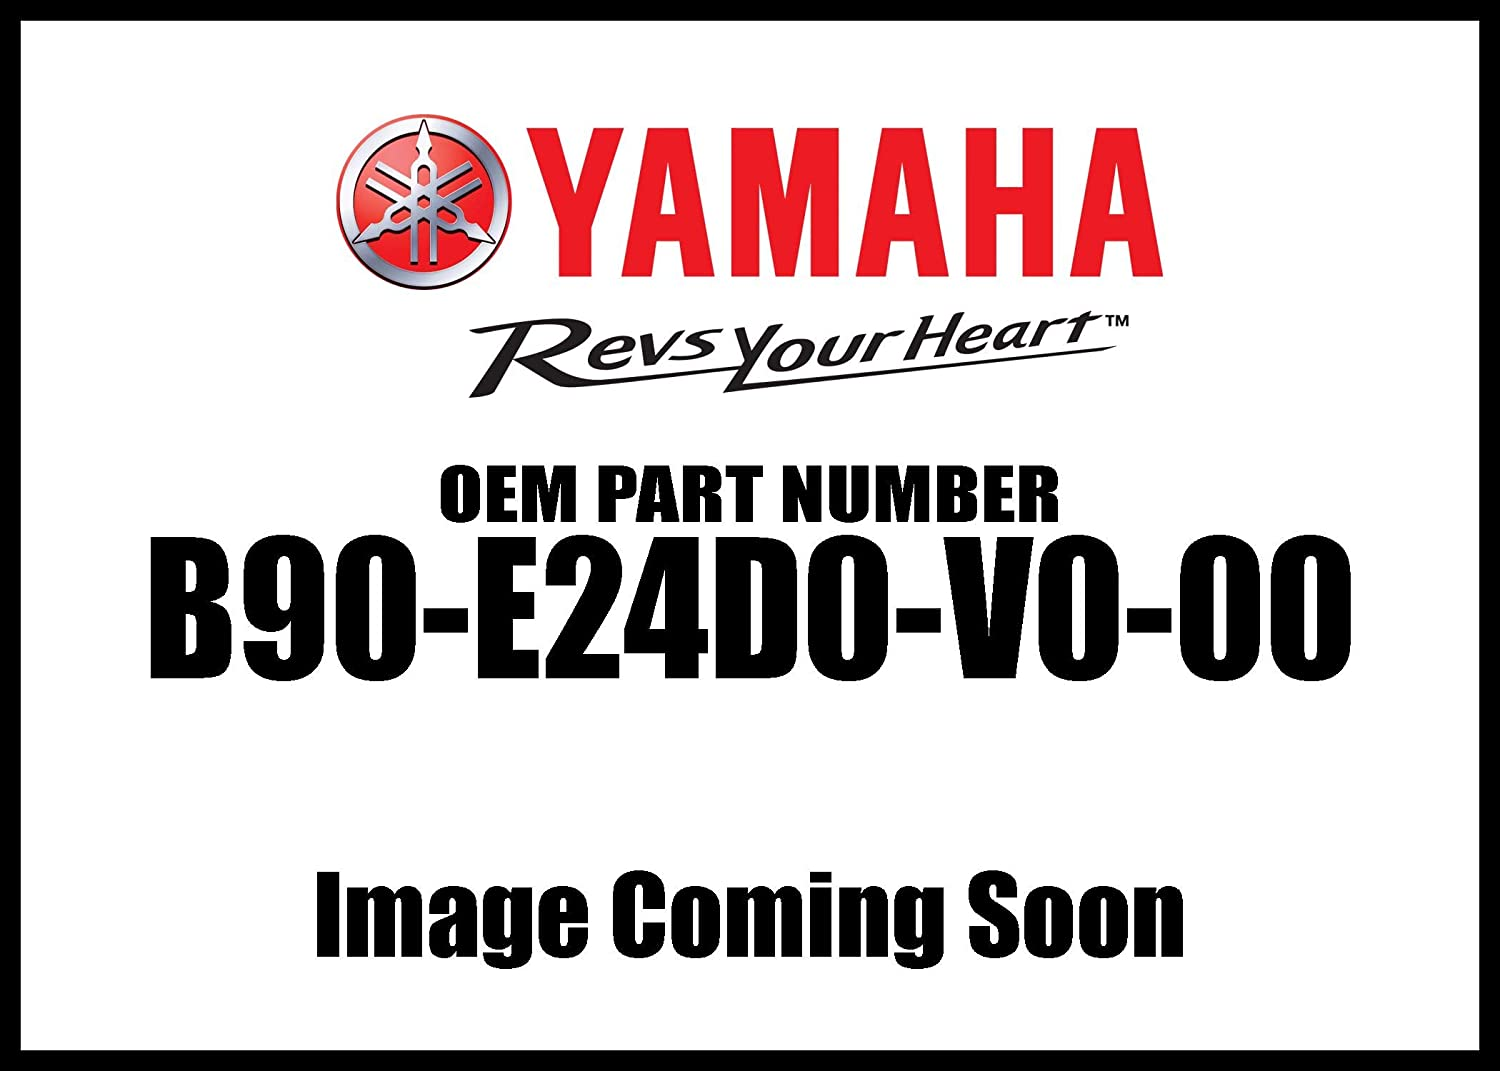 16-18 YAMAHA XSR900: Genuine Yamaha Accessories Radiator Guard (Silver With Black Logo) 4333034936